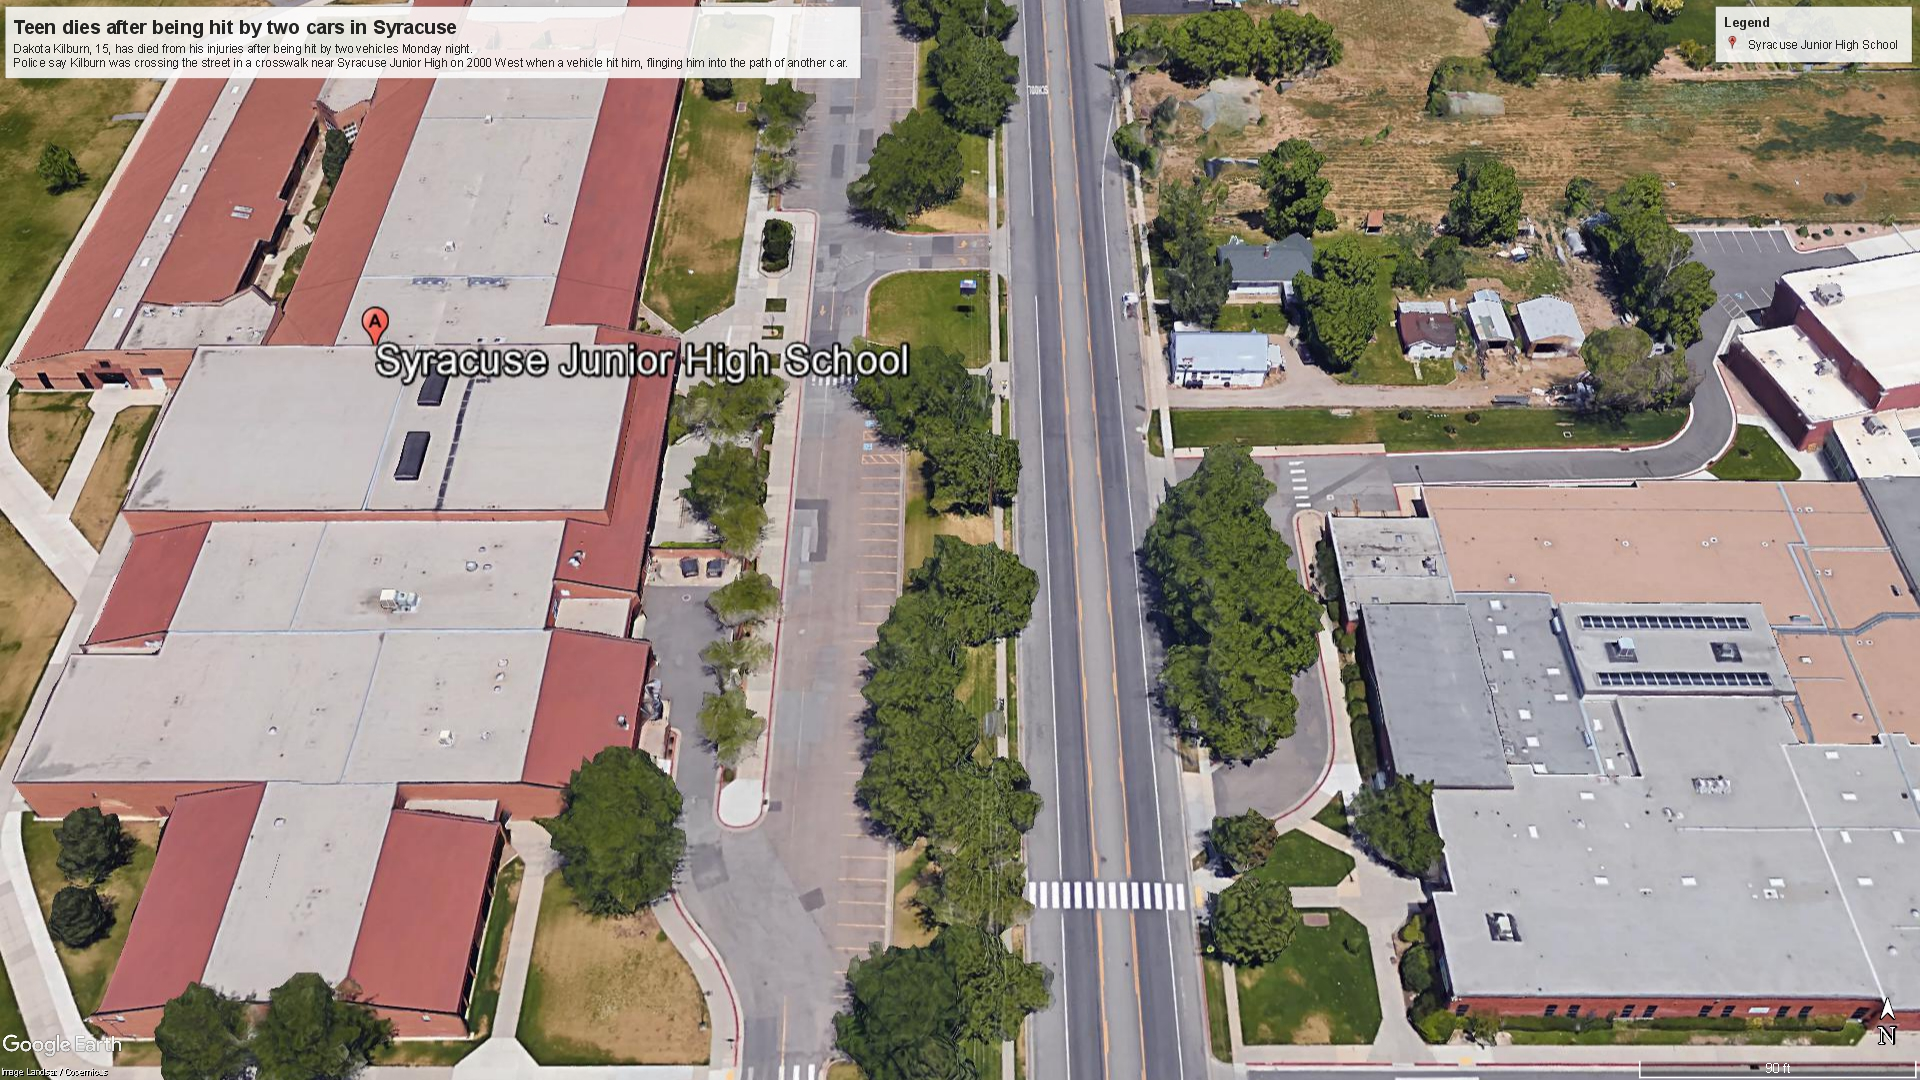 Teen boy hit by two cars in Syracuse dies. (Photo: Google Earth Pro)